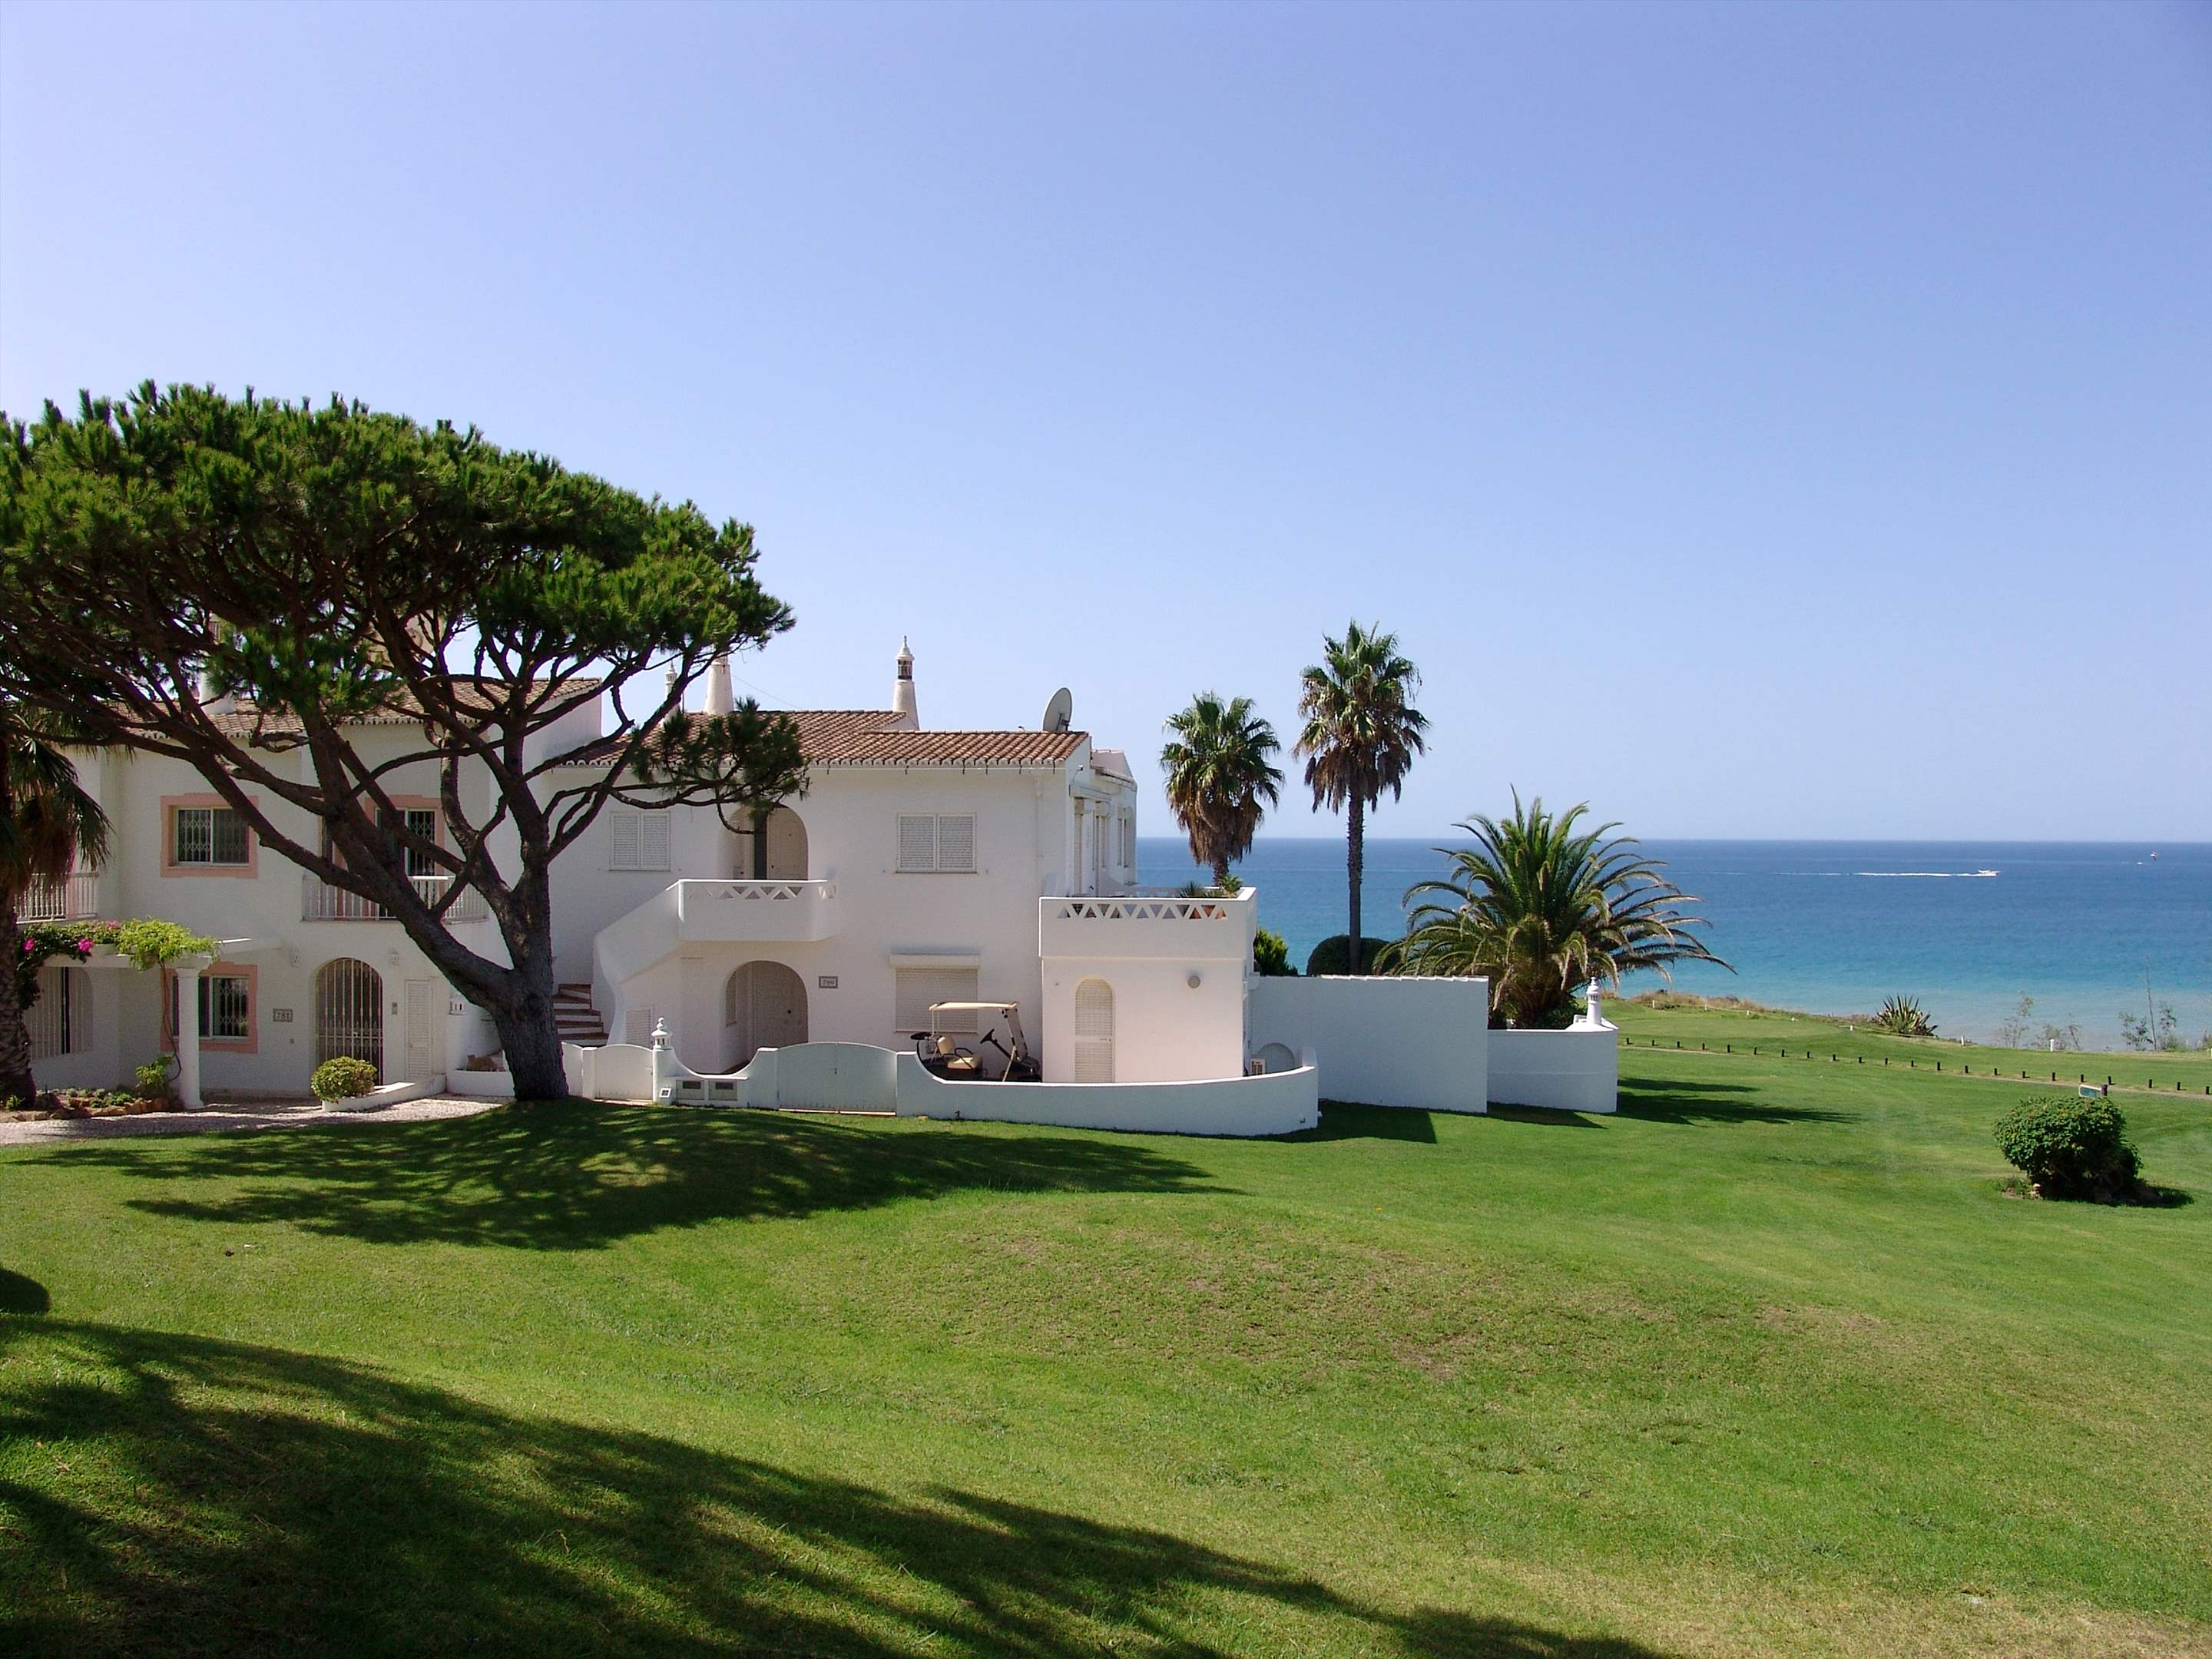 Villas Louisa, 5 bedroom, 5 bedroom villa in Vale do Lobo, Algarve Photo #14